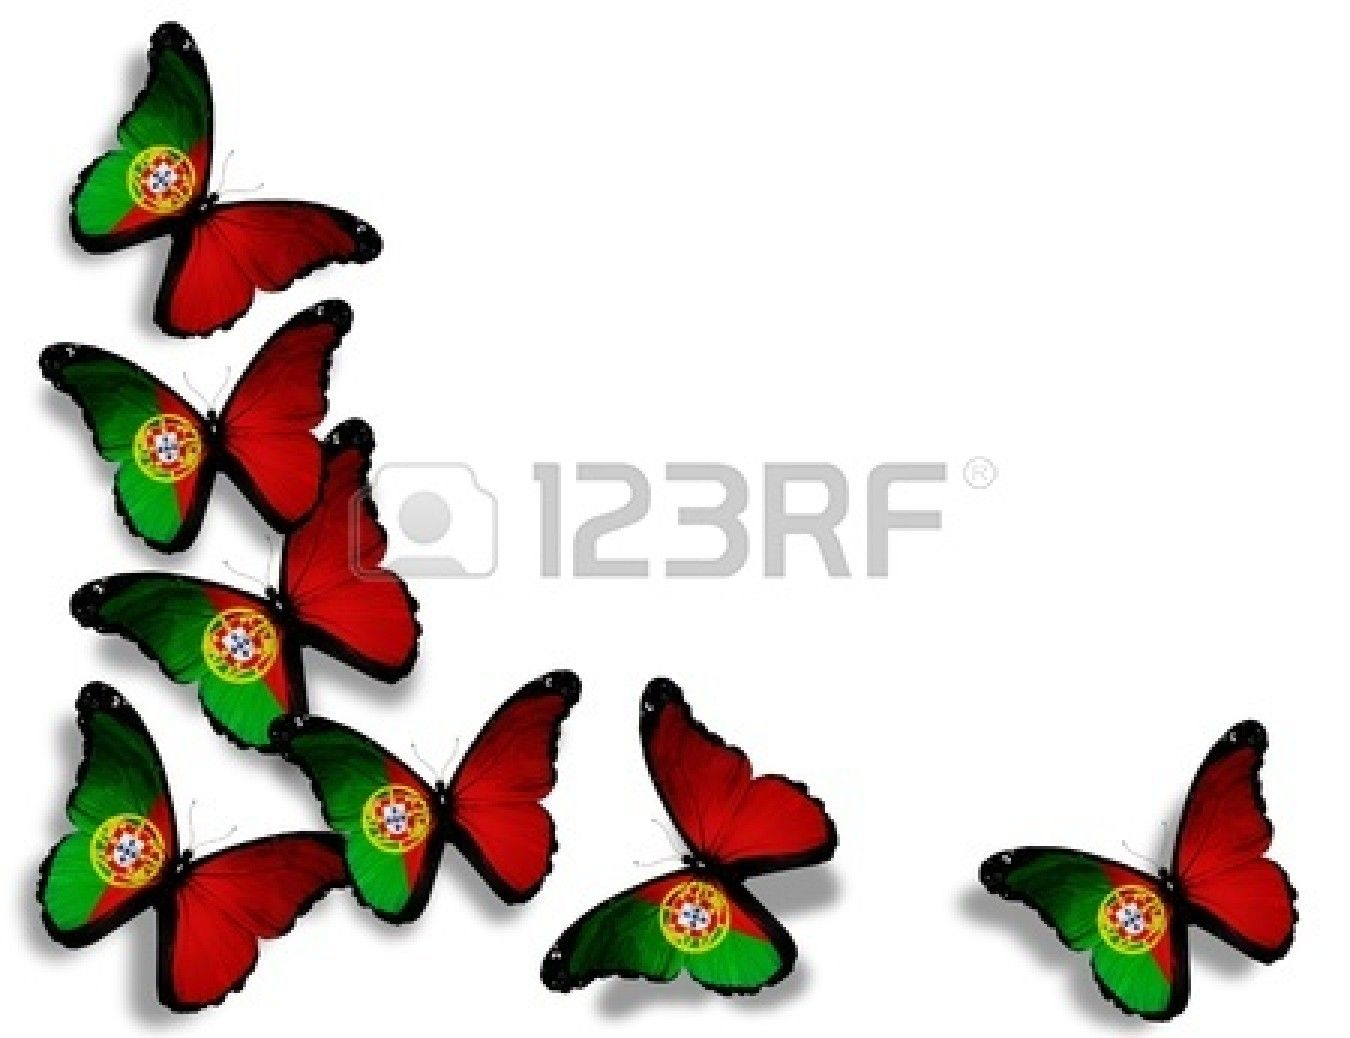 Pics photos desk with flag in background photographic print by - Portuguese Flag Butterflies Isolated On White Background Stock Photo